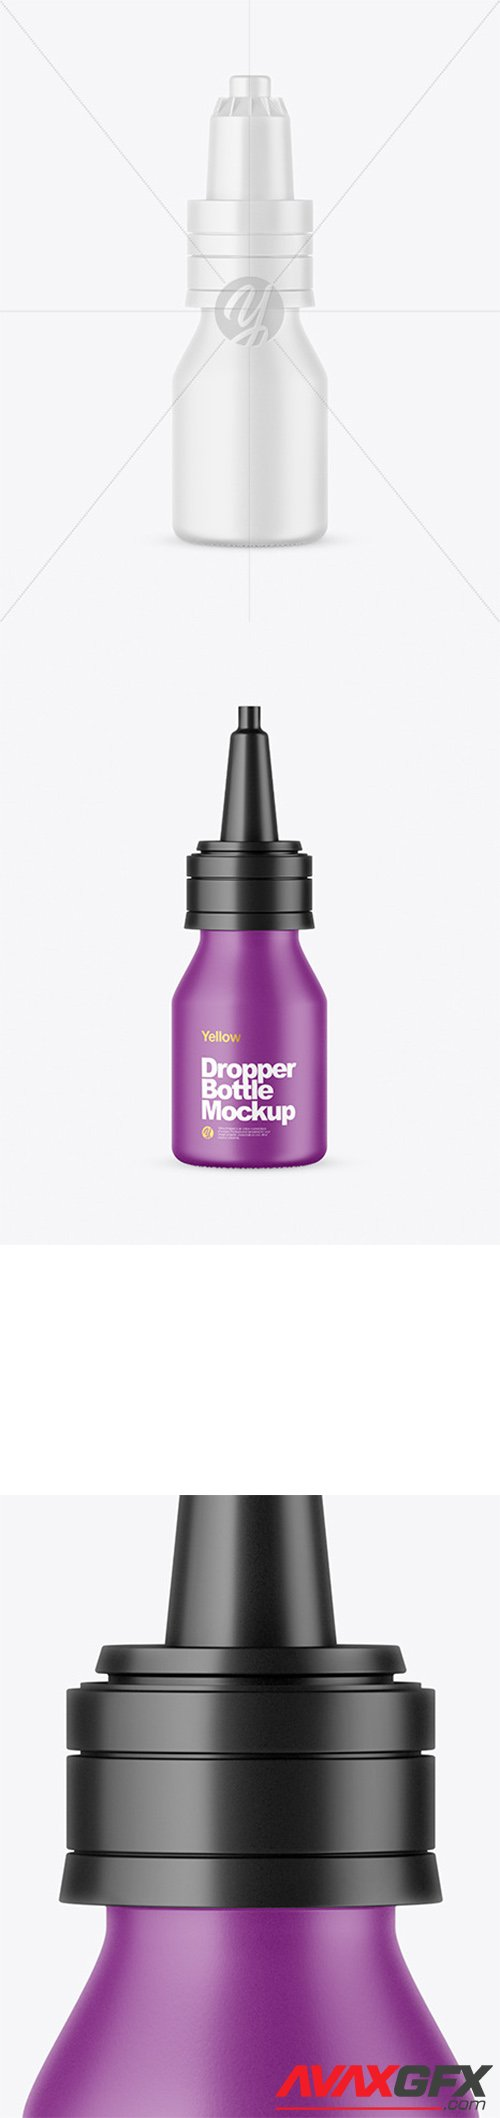 Matte Dropper Bottle Mockup 65609